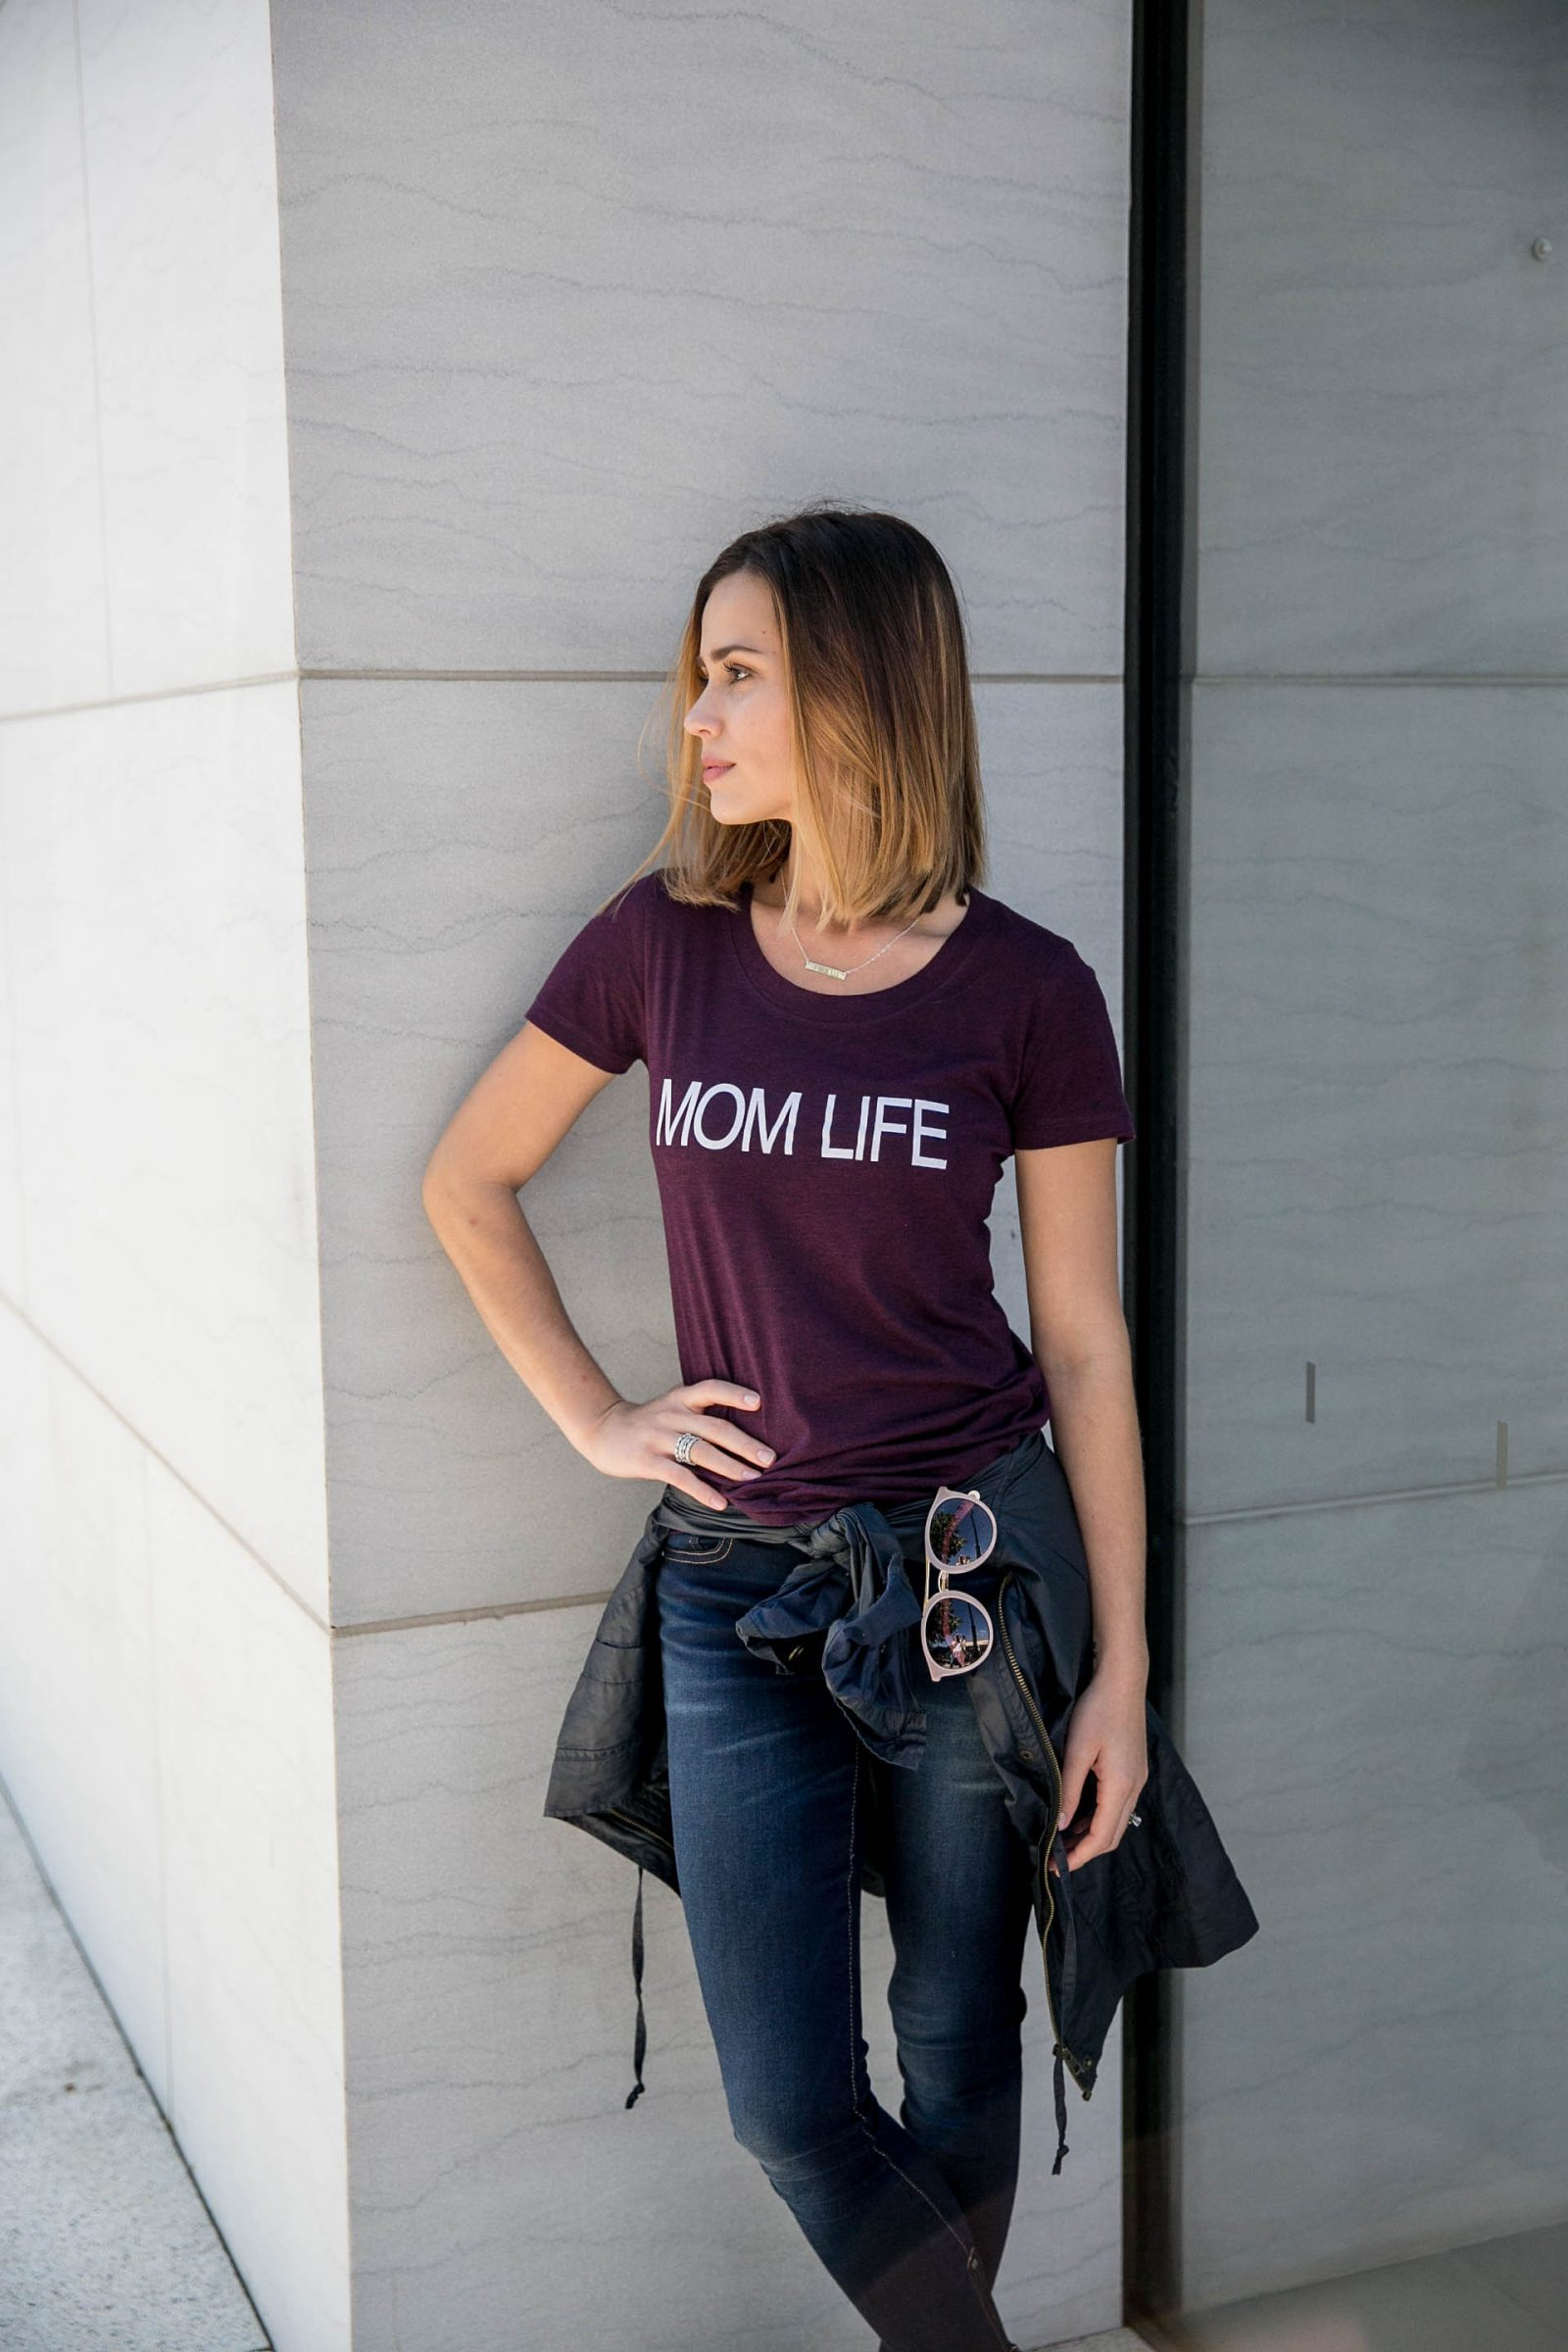 Houston lifestyle blogger Uptown with Elly Brown wears a mom life tshirt